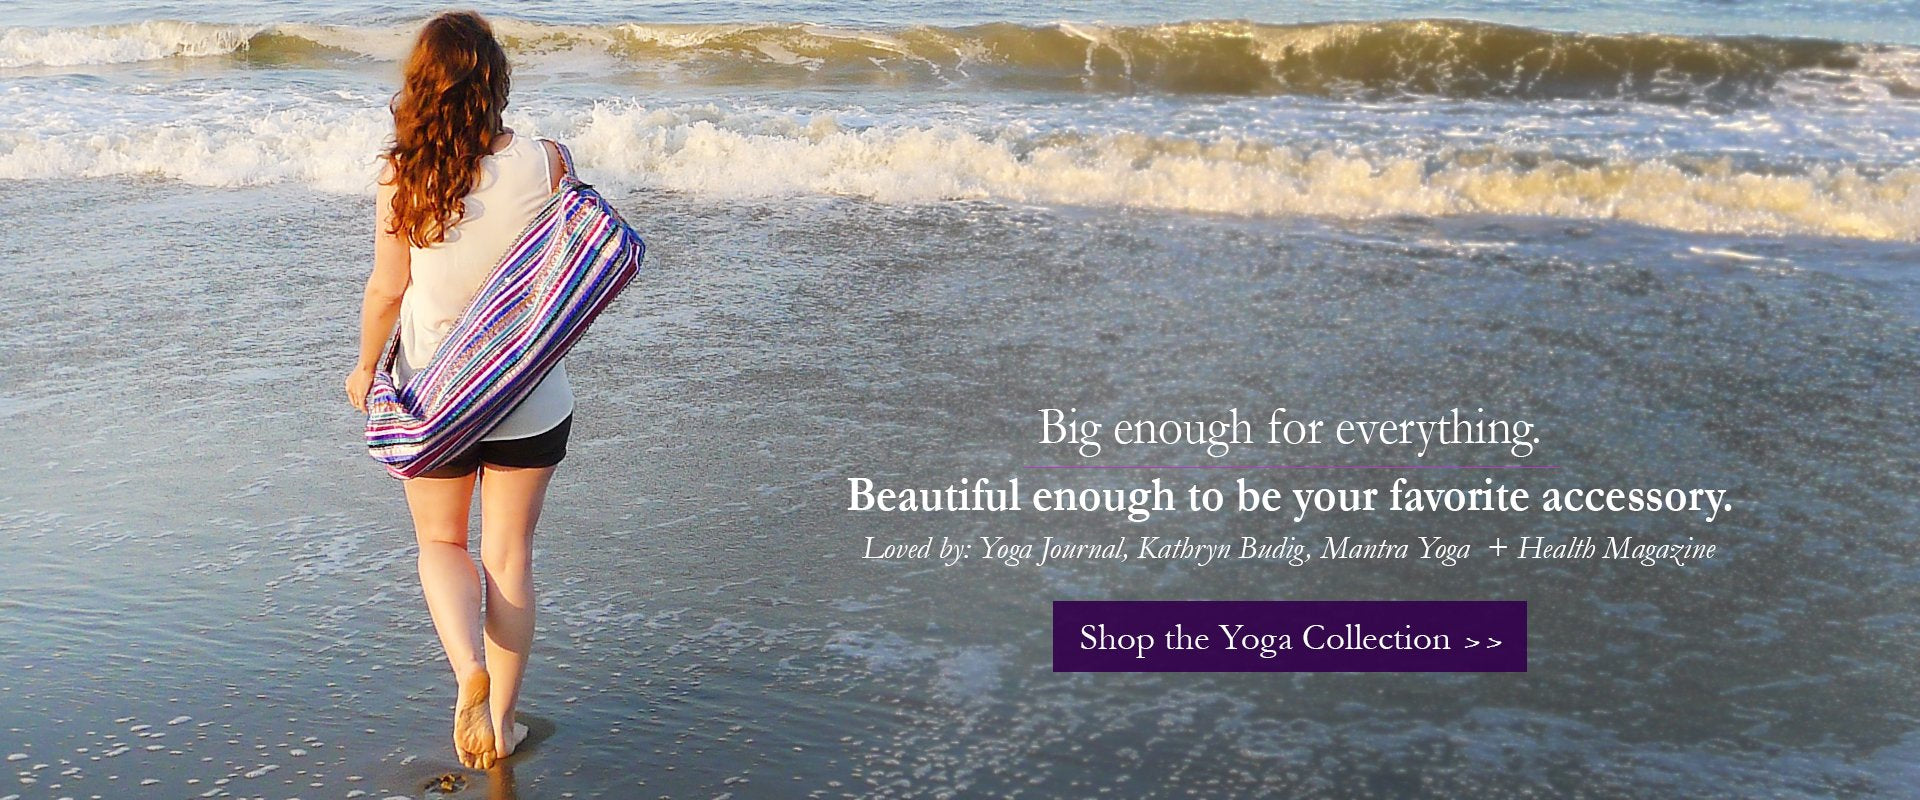 Ethical, Fair Trade and Handmade Yoga Bags and Accessories